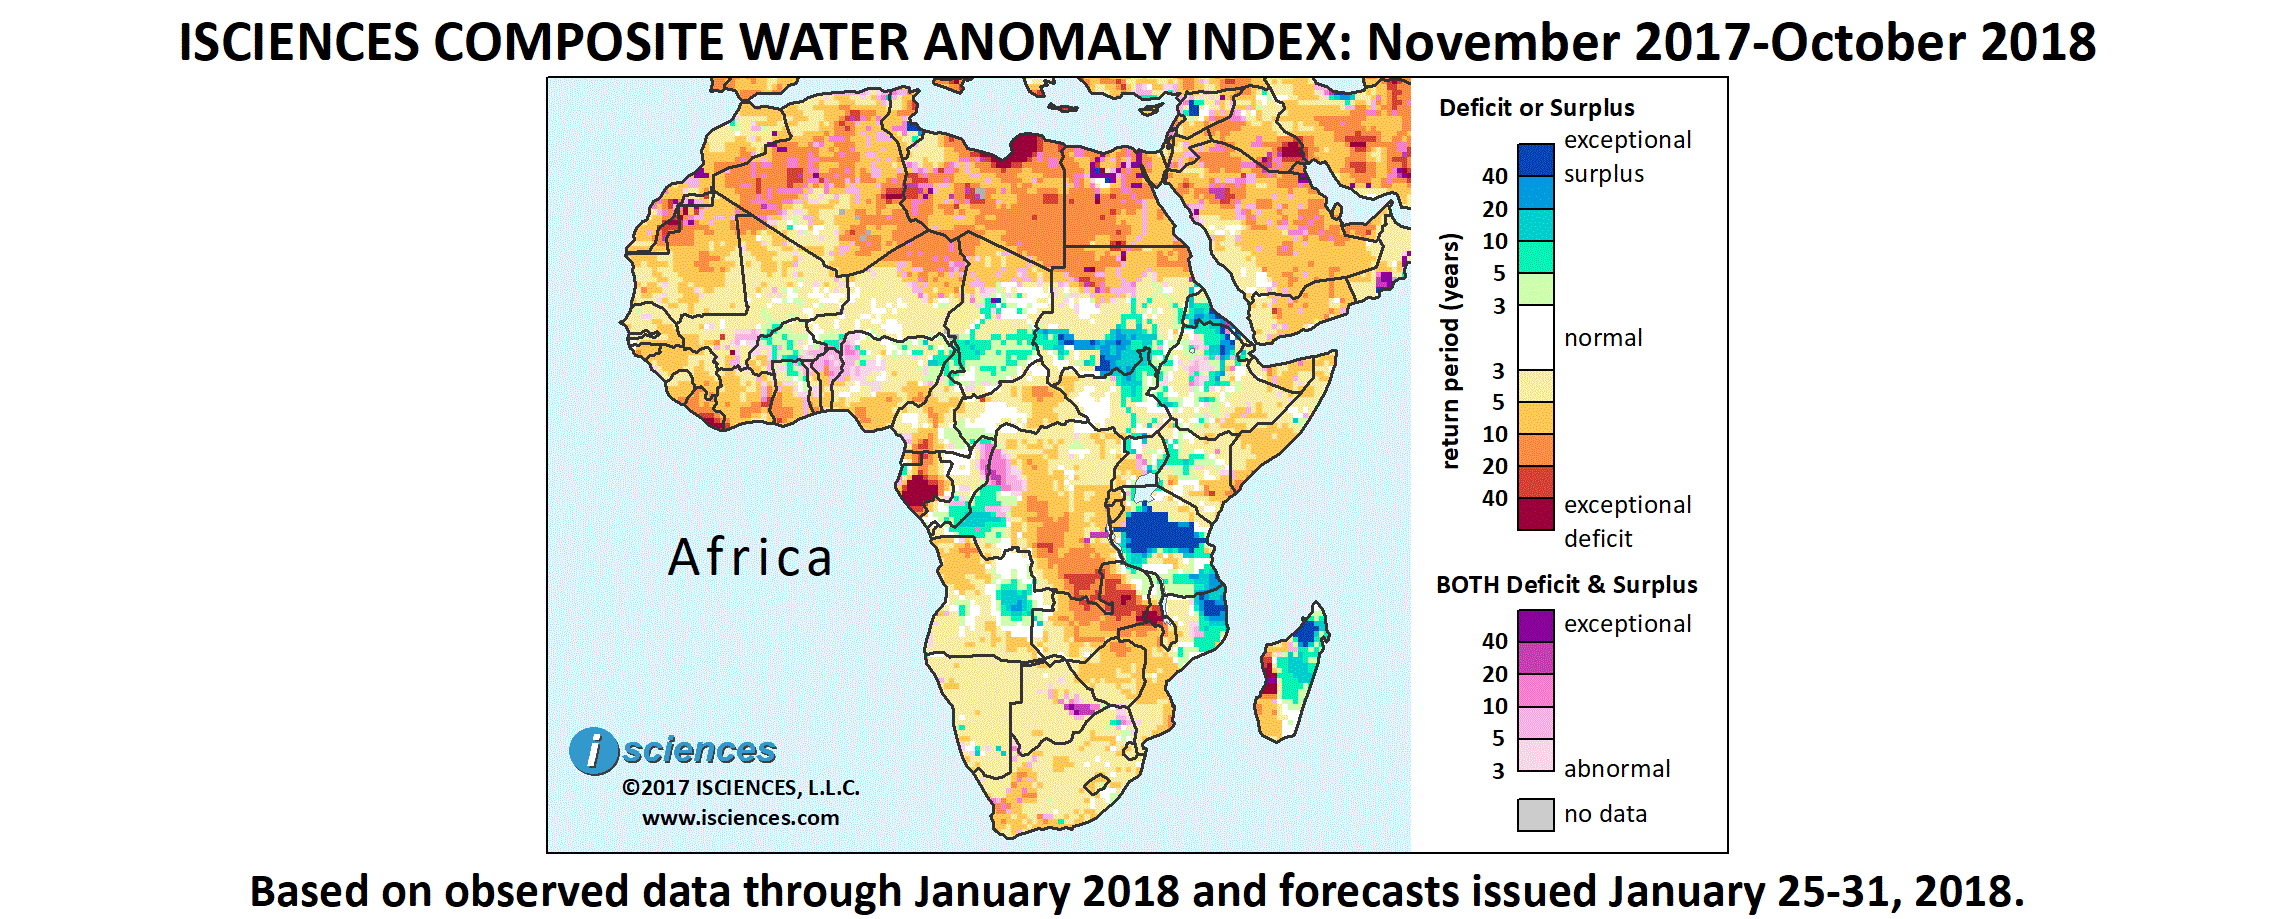 ISciences_Africa_R201801_12mo_twit_pic.png